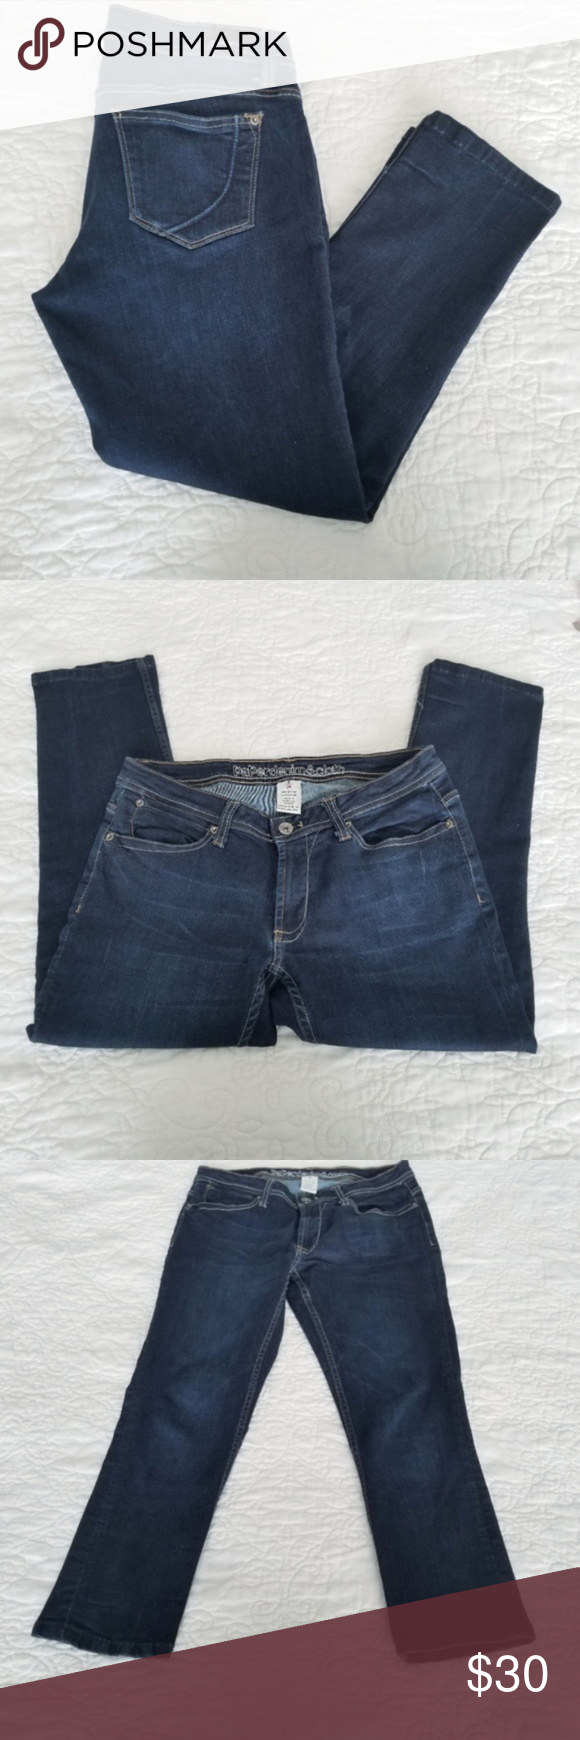 Anthropologie | Paper Denim & Cloth Ankle Jeans -Excellent used condition  -Dark...#ankle #anthropologie #cloth #condition #dark #denim #excellent #jeans #paper